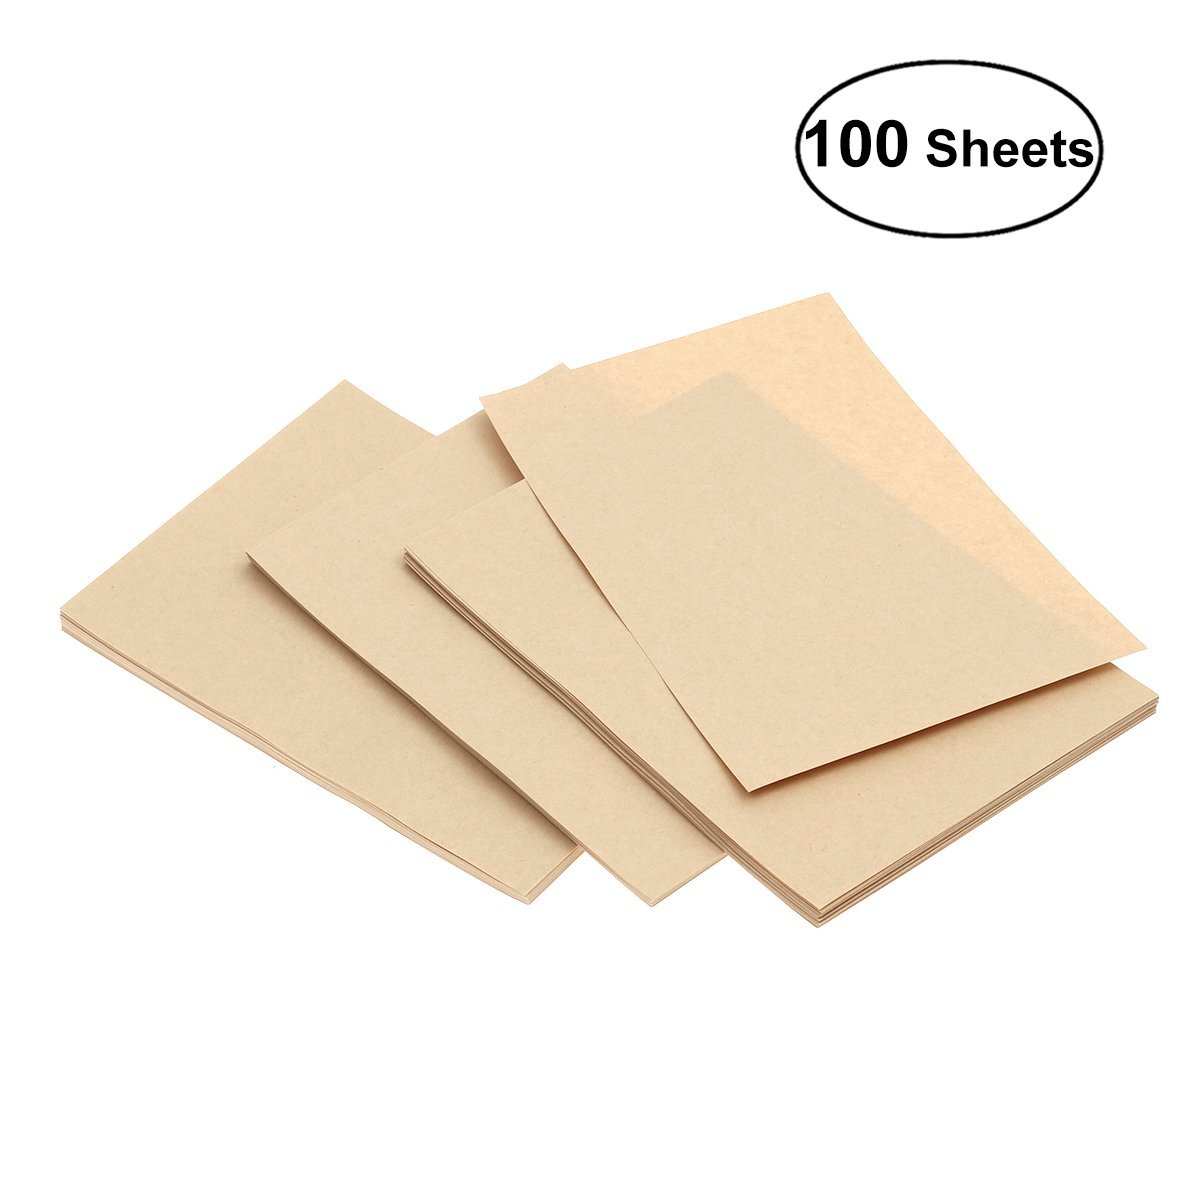 Cheap Paper A4 Size Inches, find Paper A4 Size Inches deals